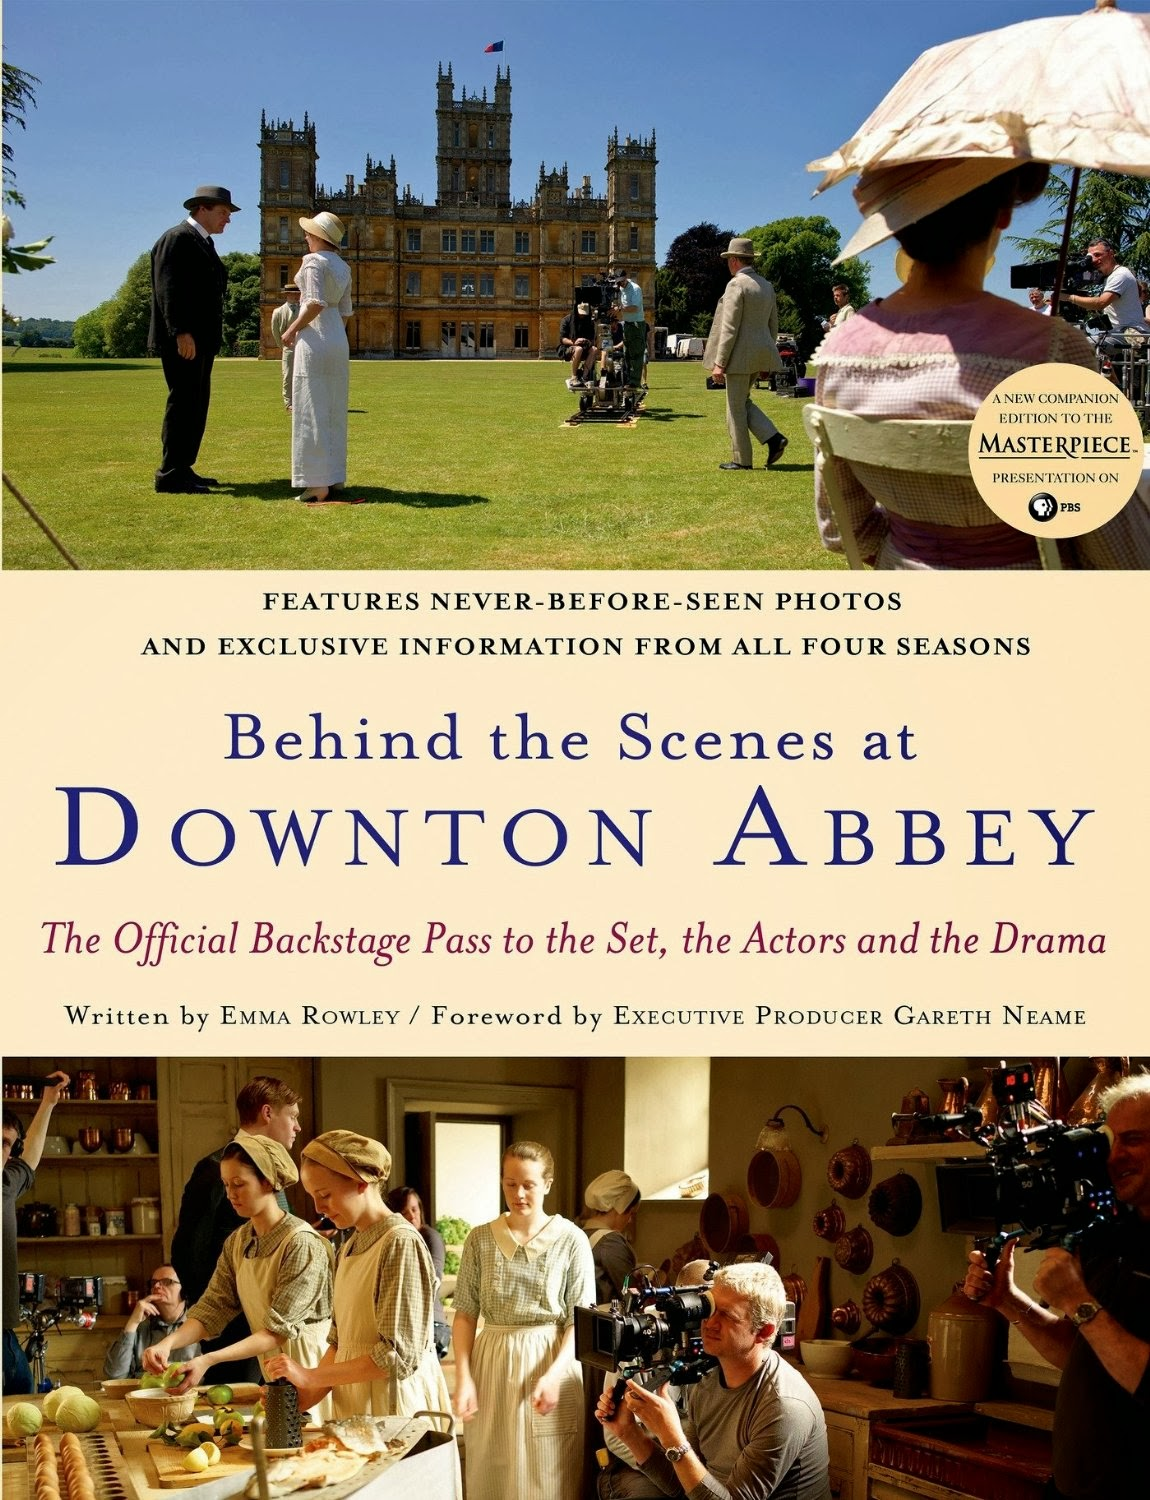 vvb32 reads: Downton Abbey: Behind the Scenes